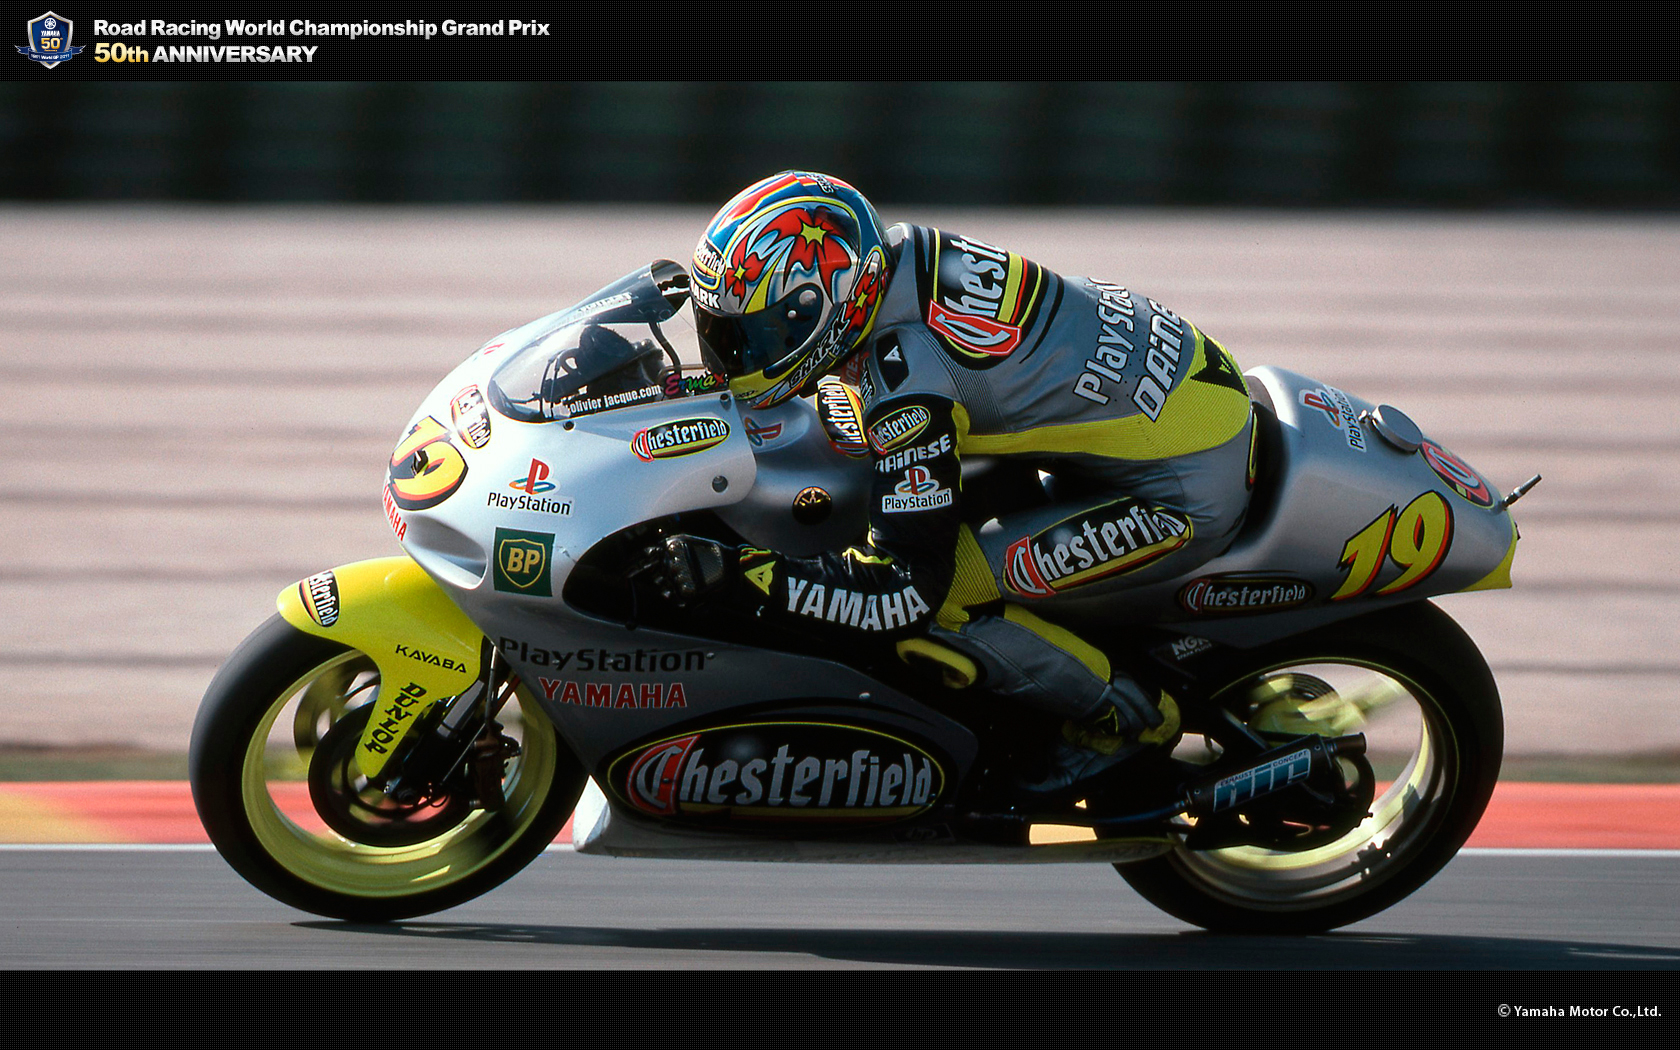 Olivier Jacque - race | Yamaha Motor Co., Ltd.